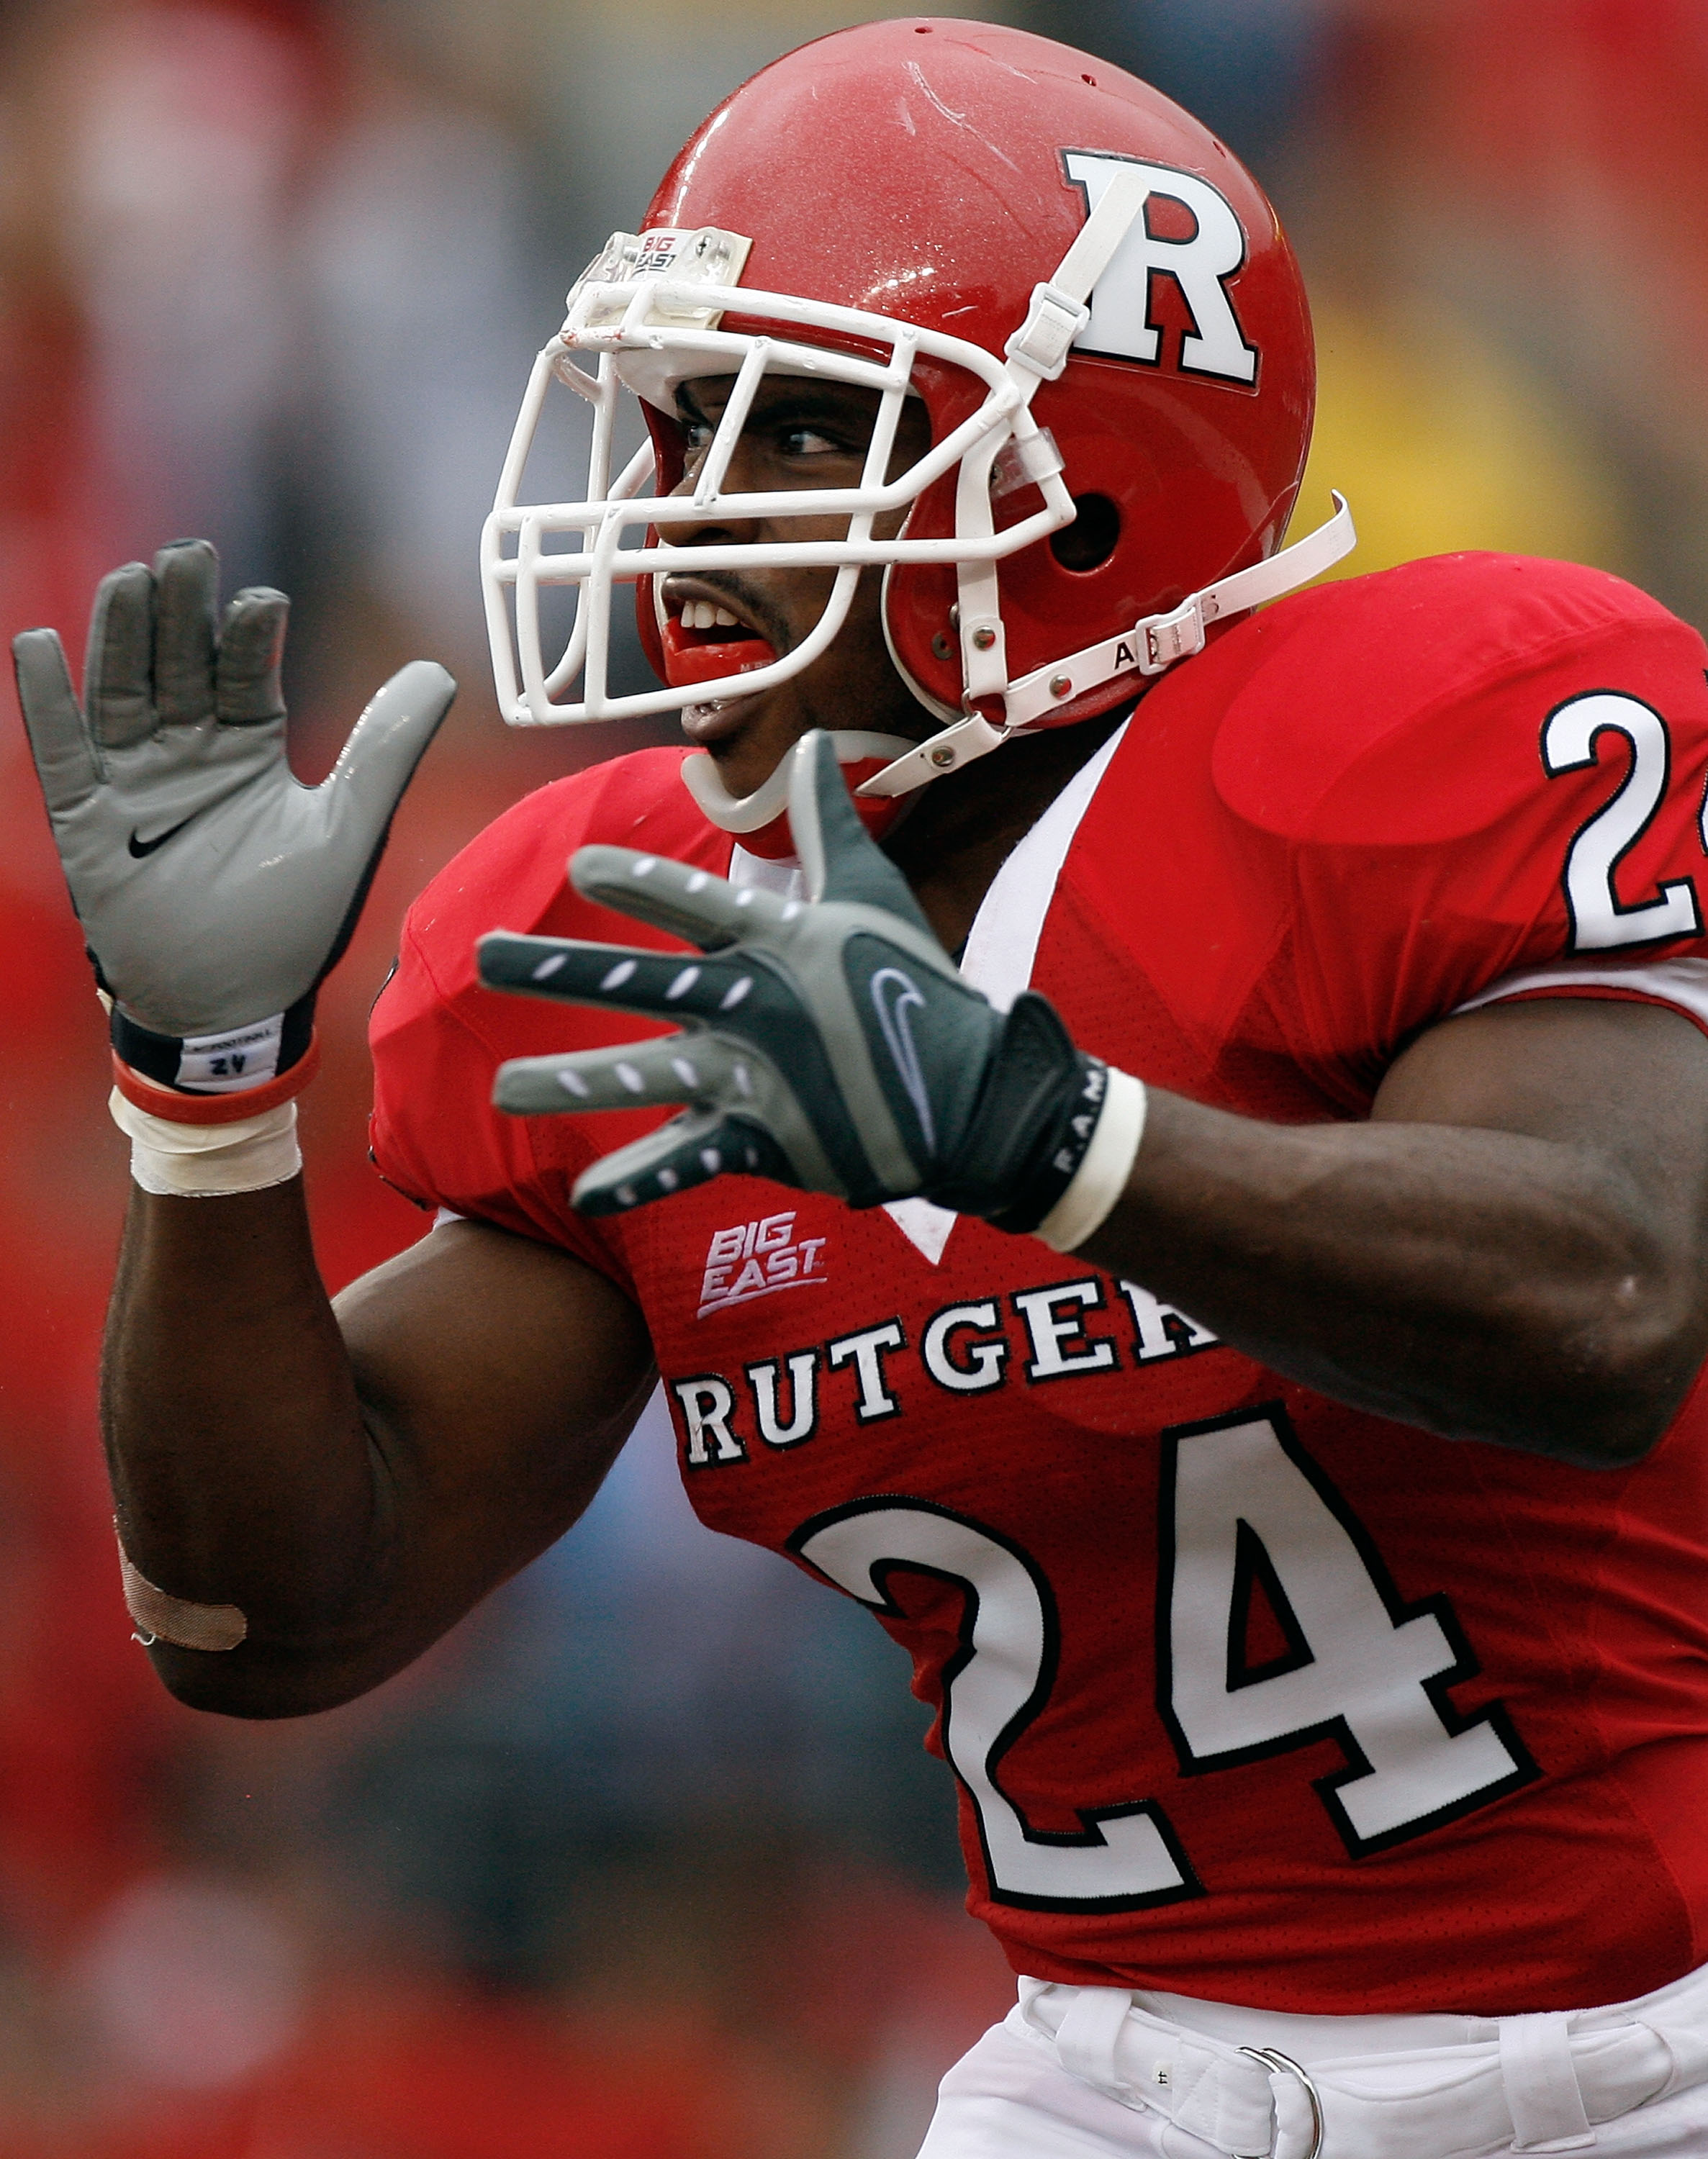 PISCATAWAY, NJ - SEPTEMBER 27: Running back Mason Robinson #24 of the Rutgers Scarlet Knights celebrates a touchdown against the Morgan State Bears during the first quarter at Rutgers Stadium on September 27, 2008 in Piscataway, New Jersey.  (Photo by Jar